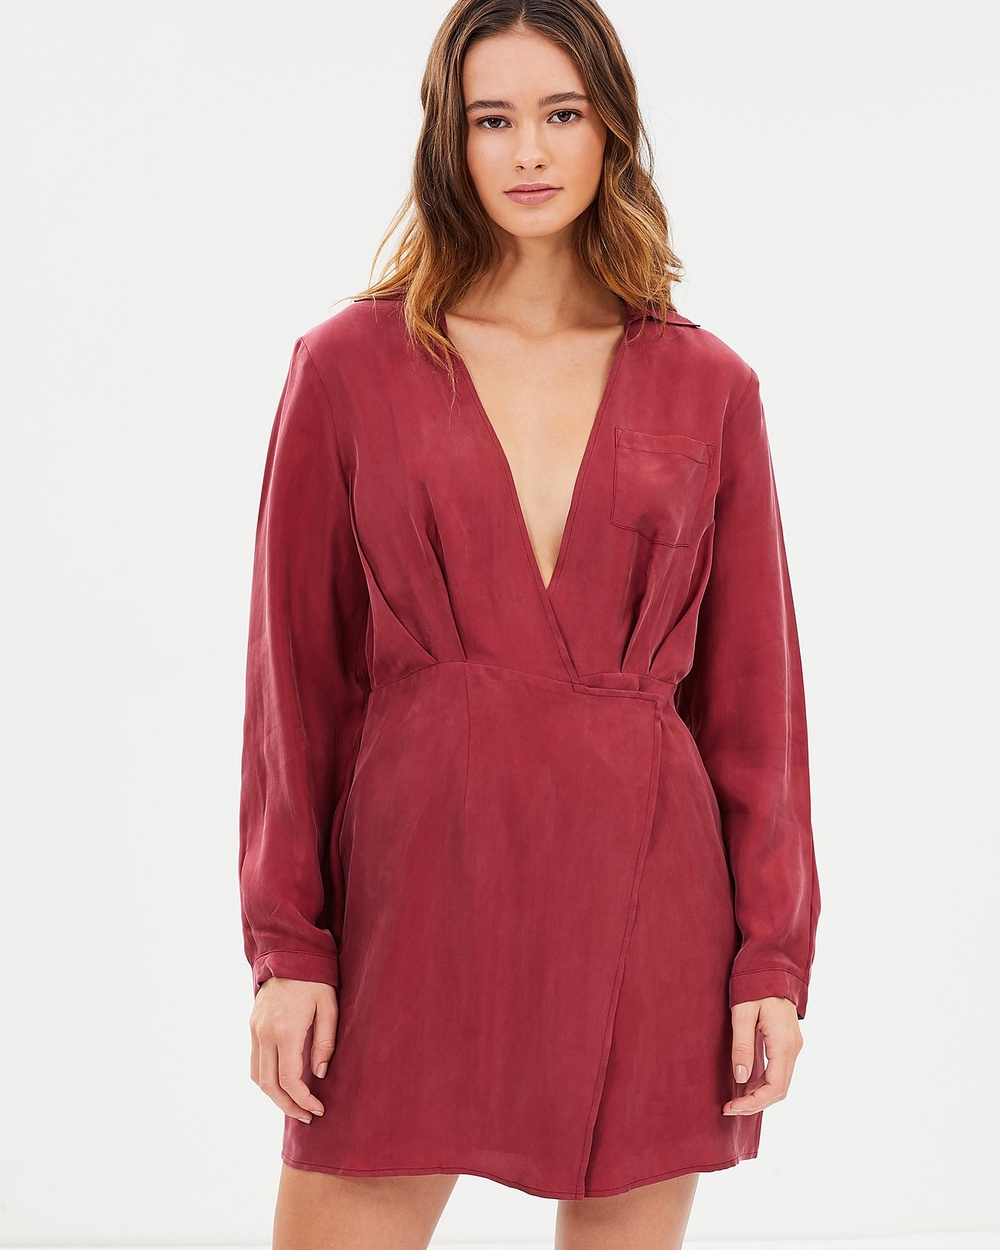 Third Form Essential Cross Shirt Dress Dresses Garnet Essential Cross Shirt Dress